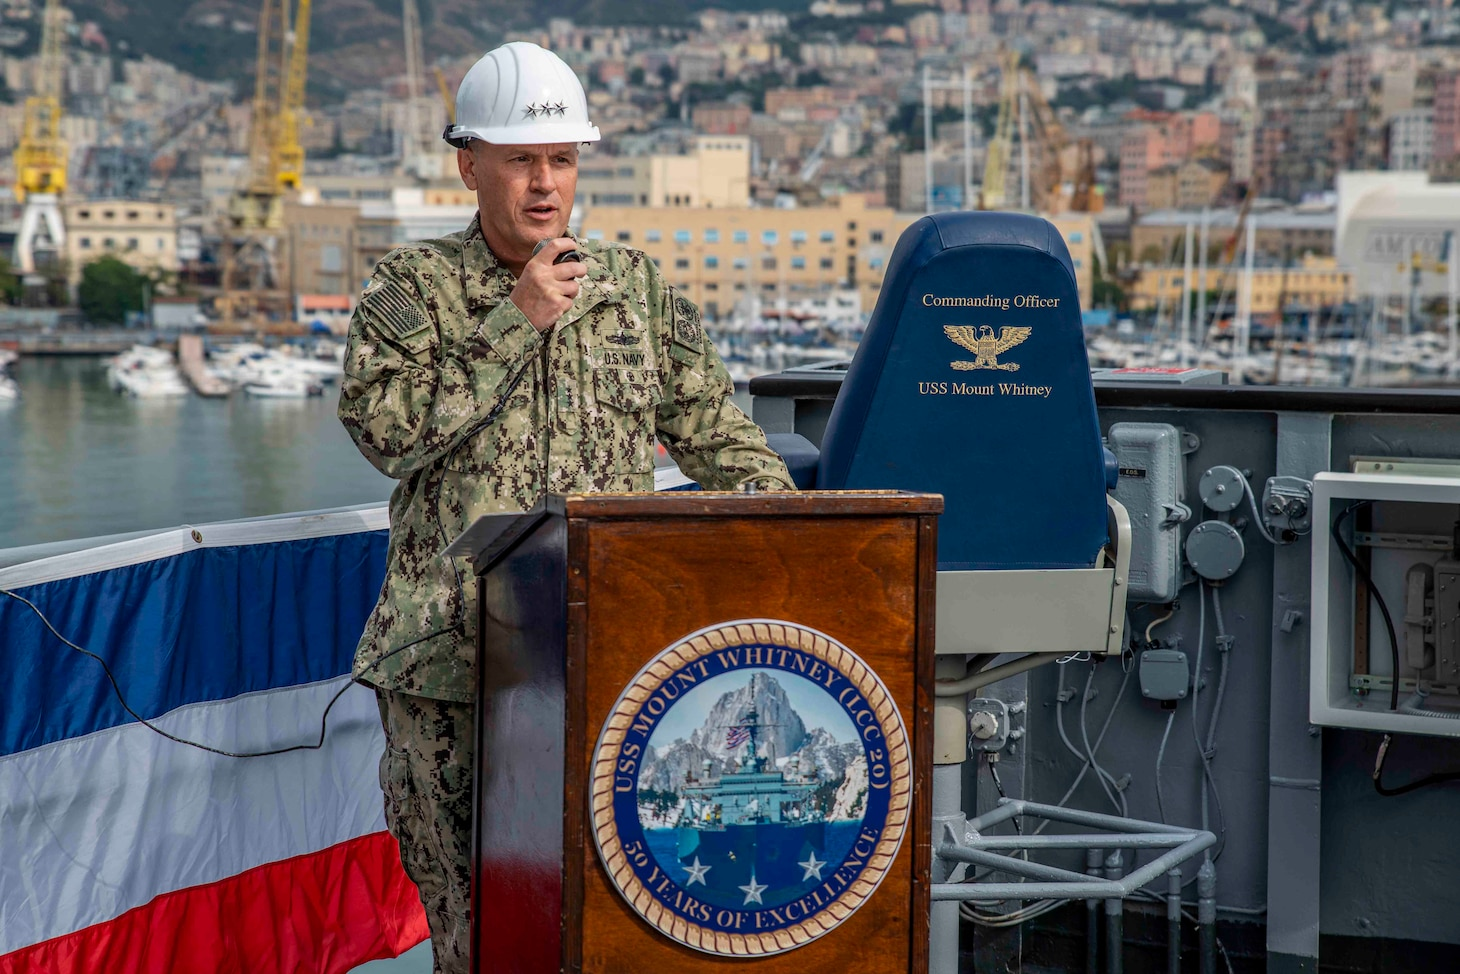 (Aug 31, 2021) Vice Adm. Gene Black, commander, U.S. Sixth Fleet, speaks during the change of command of the Blue Ridge-class command and control ship USS Mount Whitney (LCC 20) in San Giorgio Del Porto in Genoa, Italy, August, 31, 2021.  Mount Whitney, the U.S. Sixth Fleet flagship, homeported in Gaeta, Italy entered its regularly scheduled overhaul to make improvements in order to increase the security and stability of the U.S. Sixth Fleet area of operations.